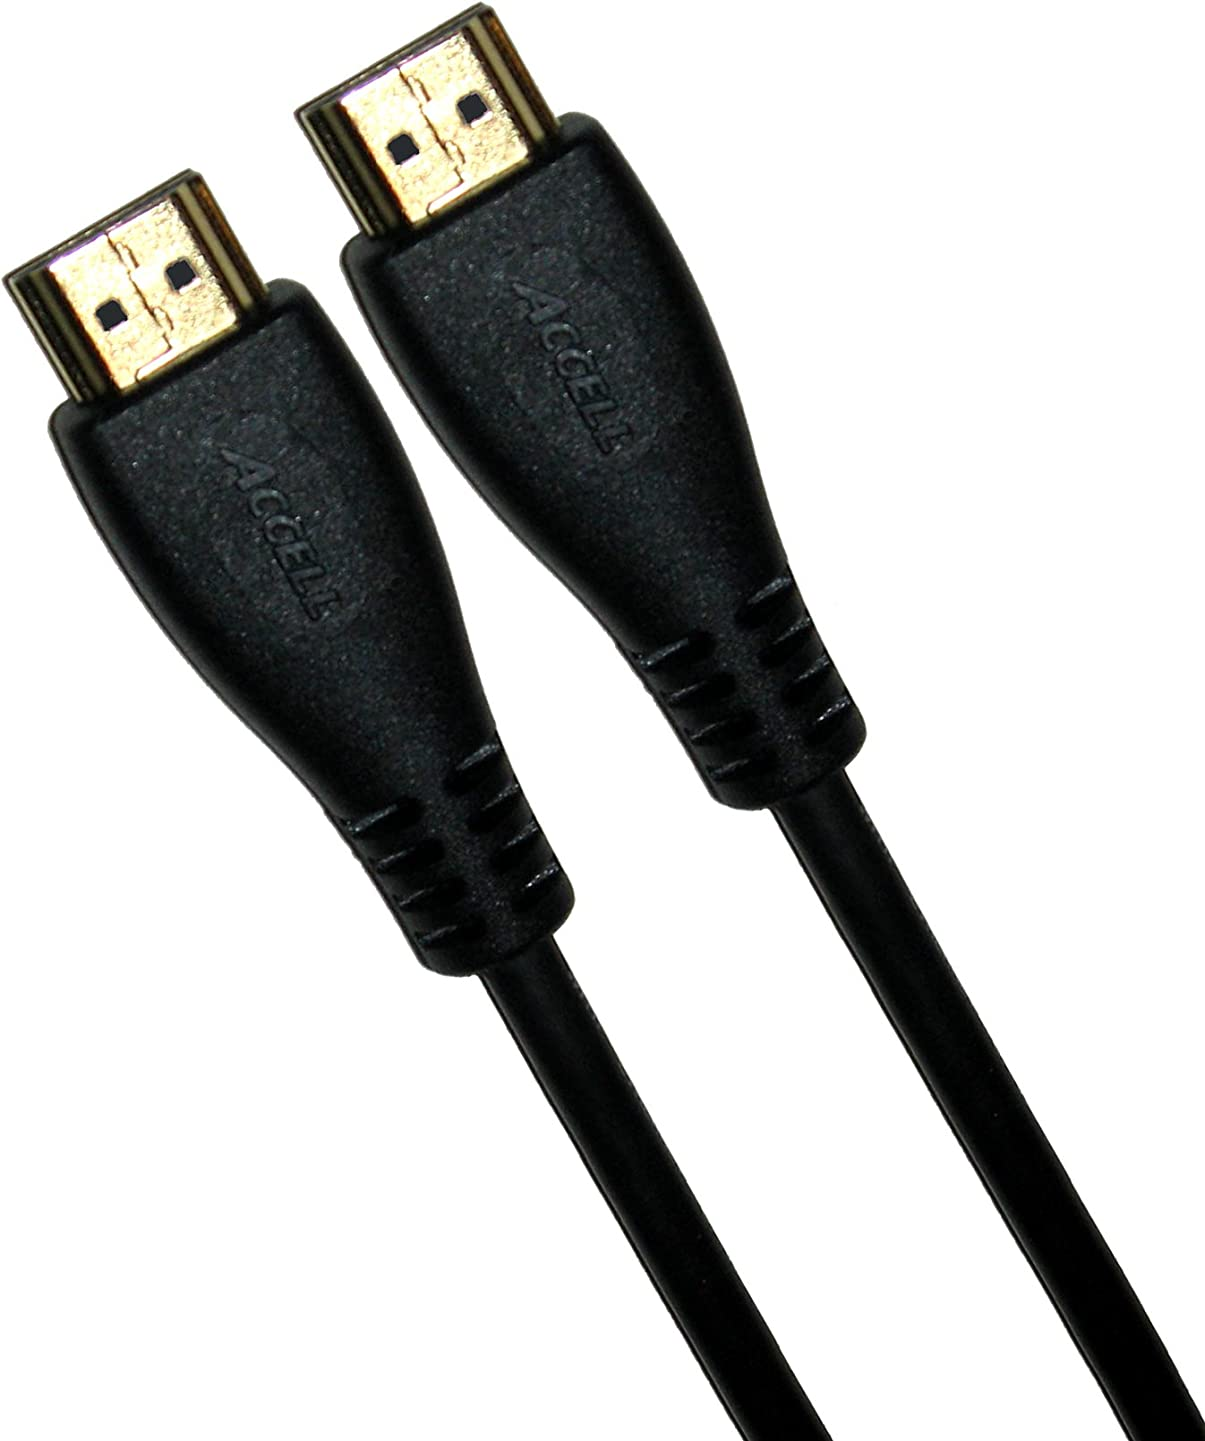 Accell A103C-006B High Speed HDMI Cable with Ethernet - 6.5 Feet (2 Meters), HDMI 2.0 Compliant for 4K UHD @ 60Hz